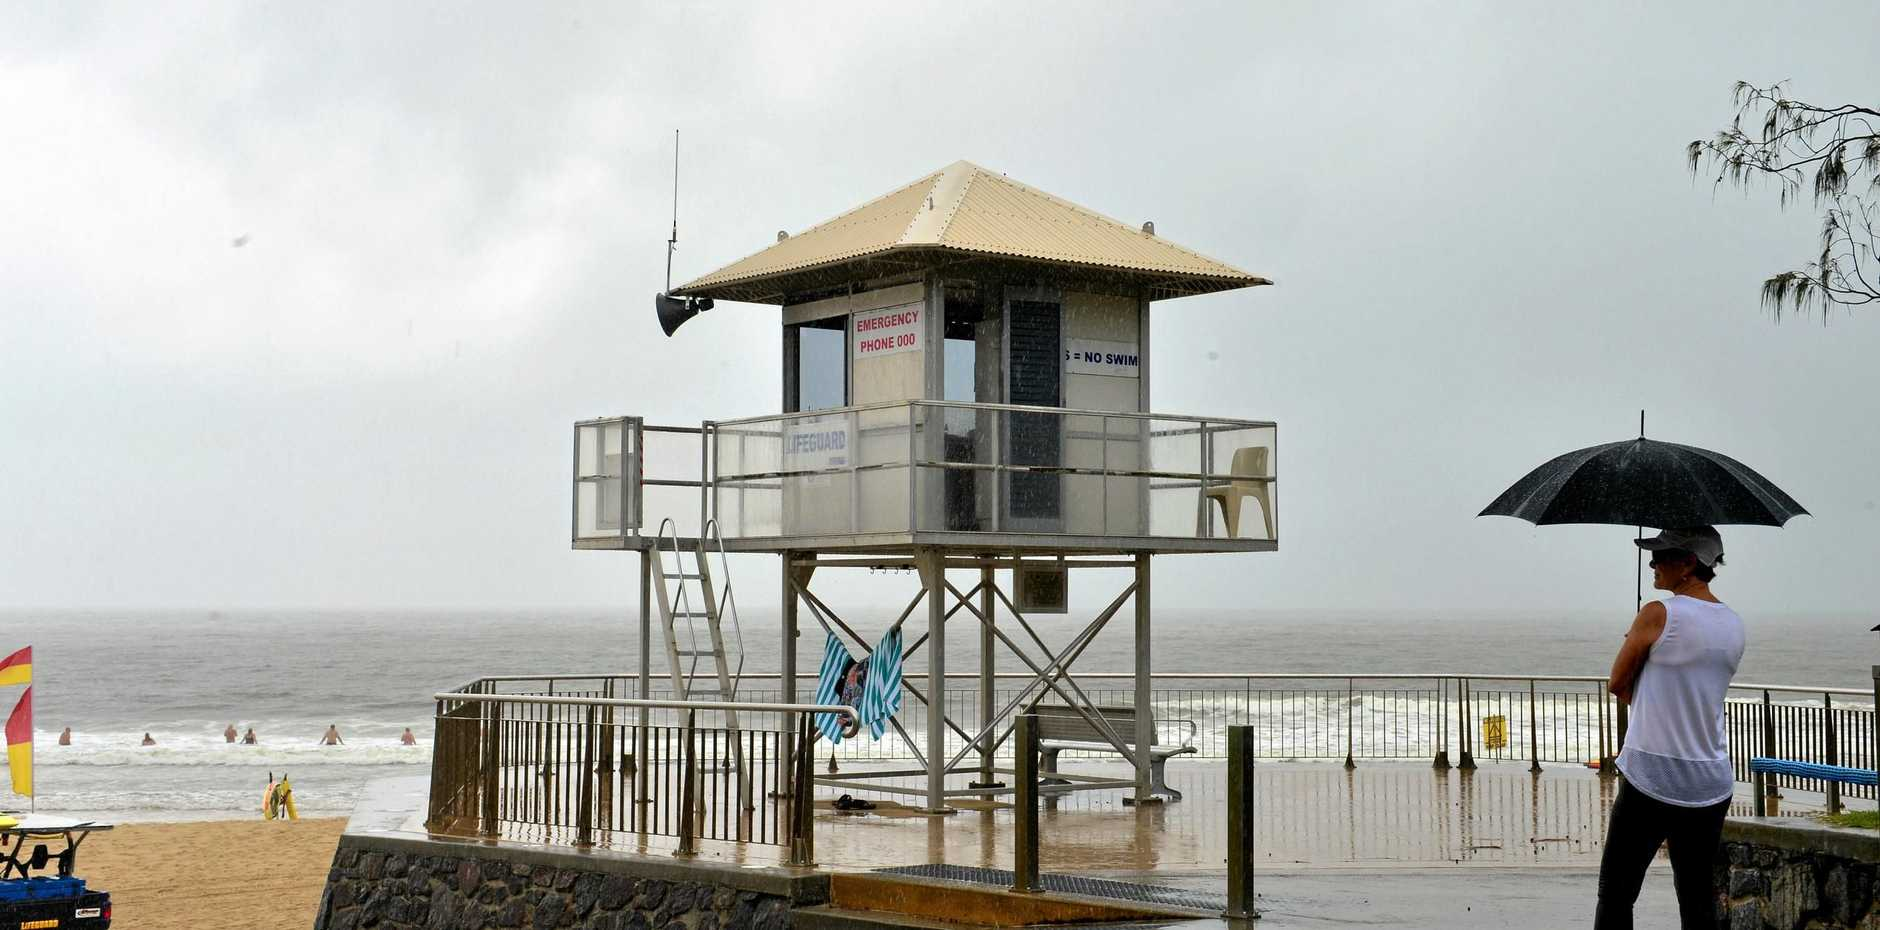 Mooloolaba Beach is one of several Coast beaches that have closed due to the storms.